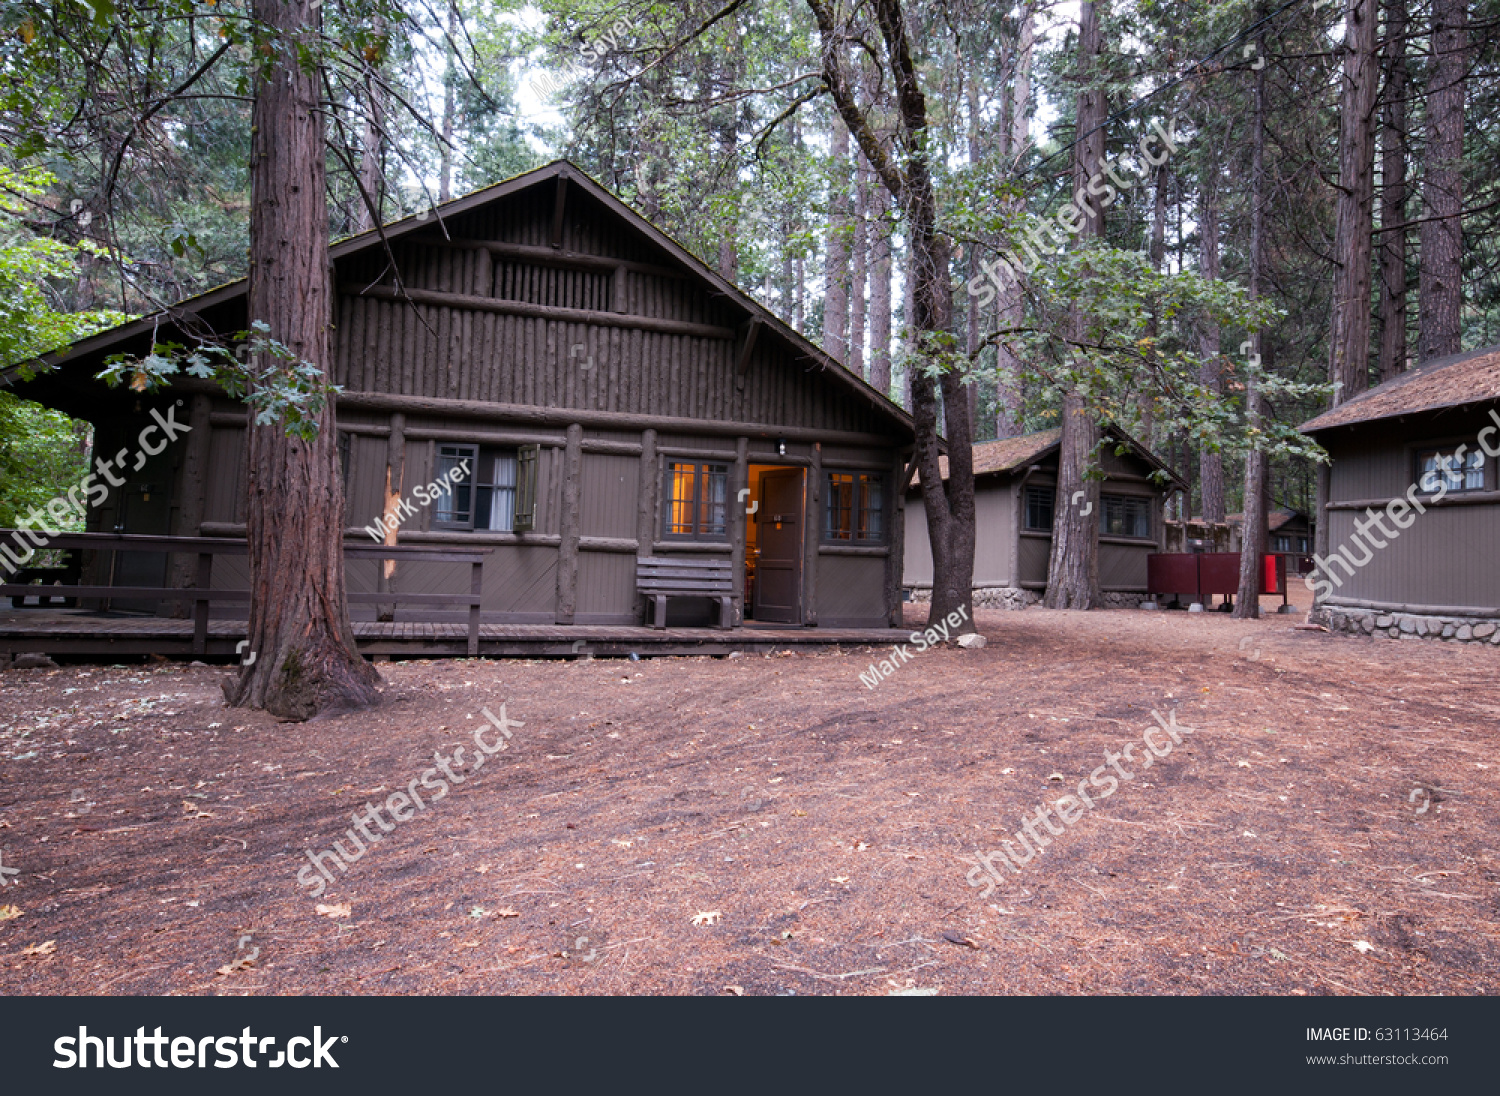 Wooden cabin in the woods with bear scratches on a beam for Curry village cabins yosemite